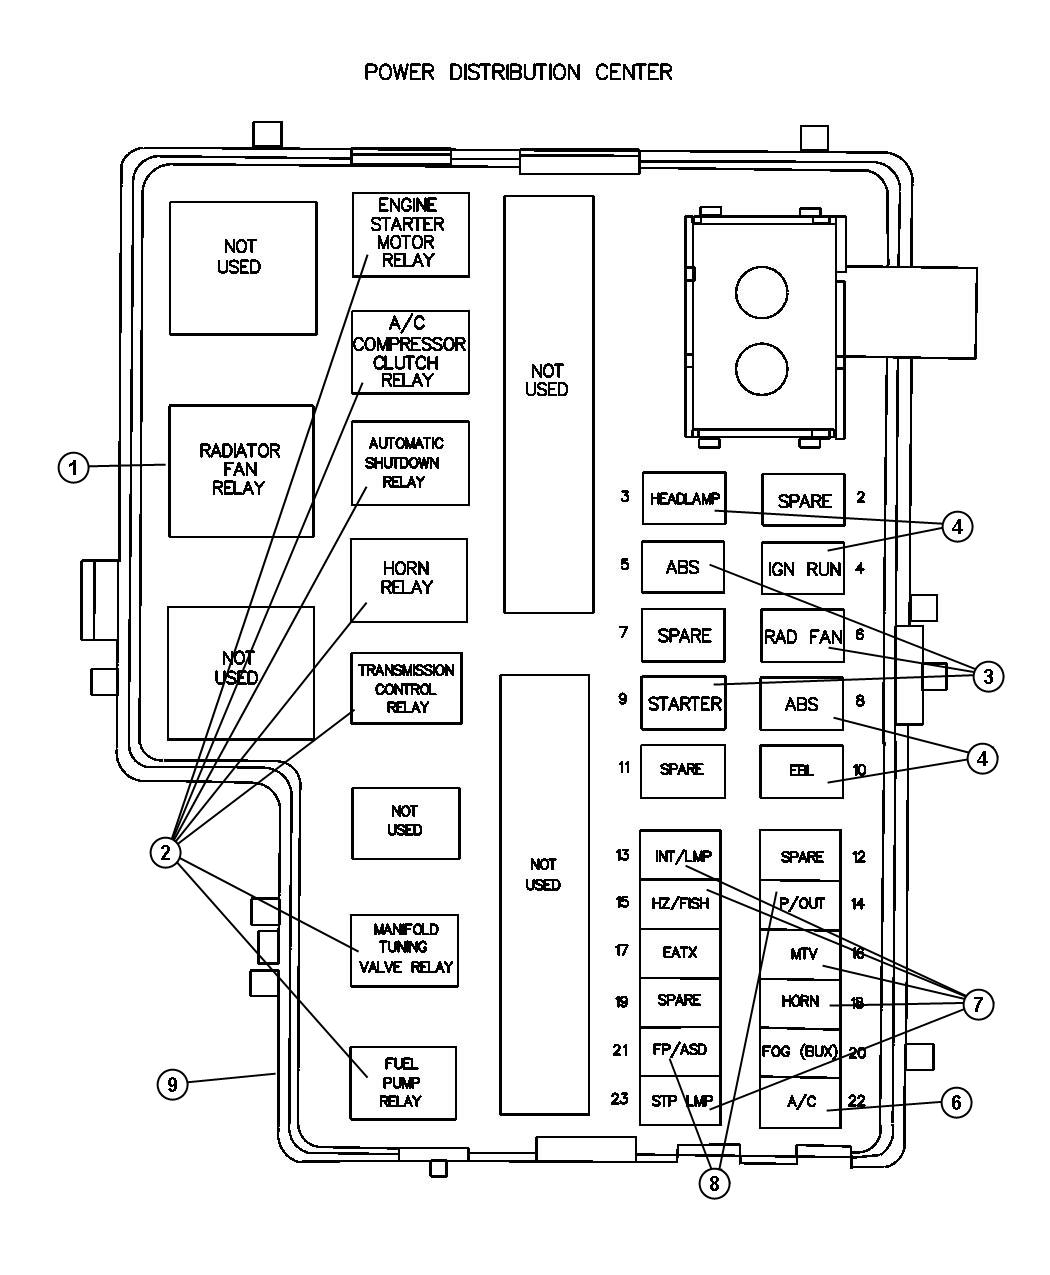 2004 dodge neon alternator wiring diagram for nutone bathroom fan stratus fuse box best library ram as well 2000 1999 diagrams